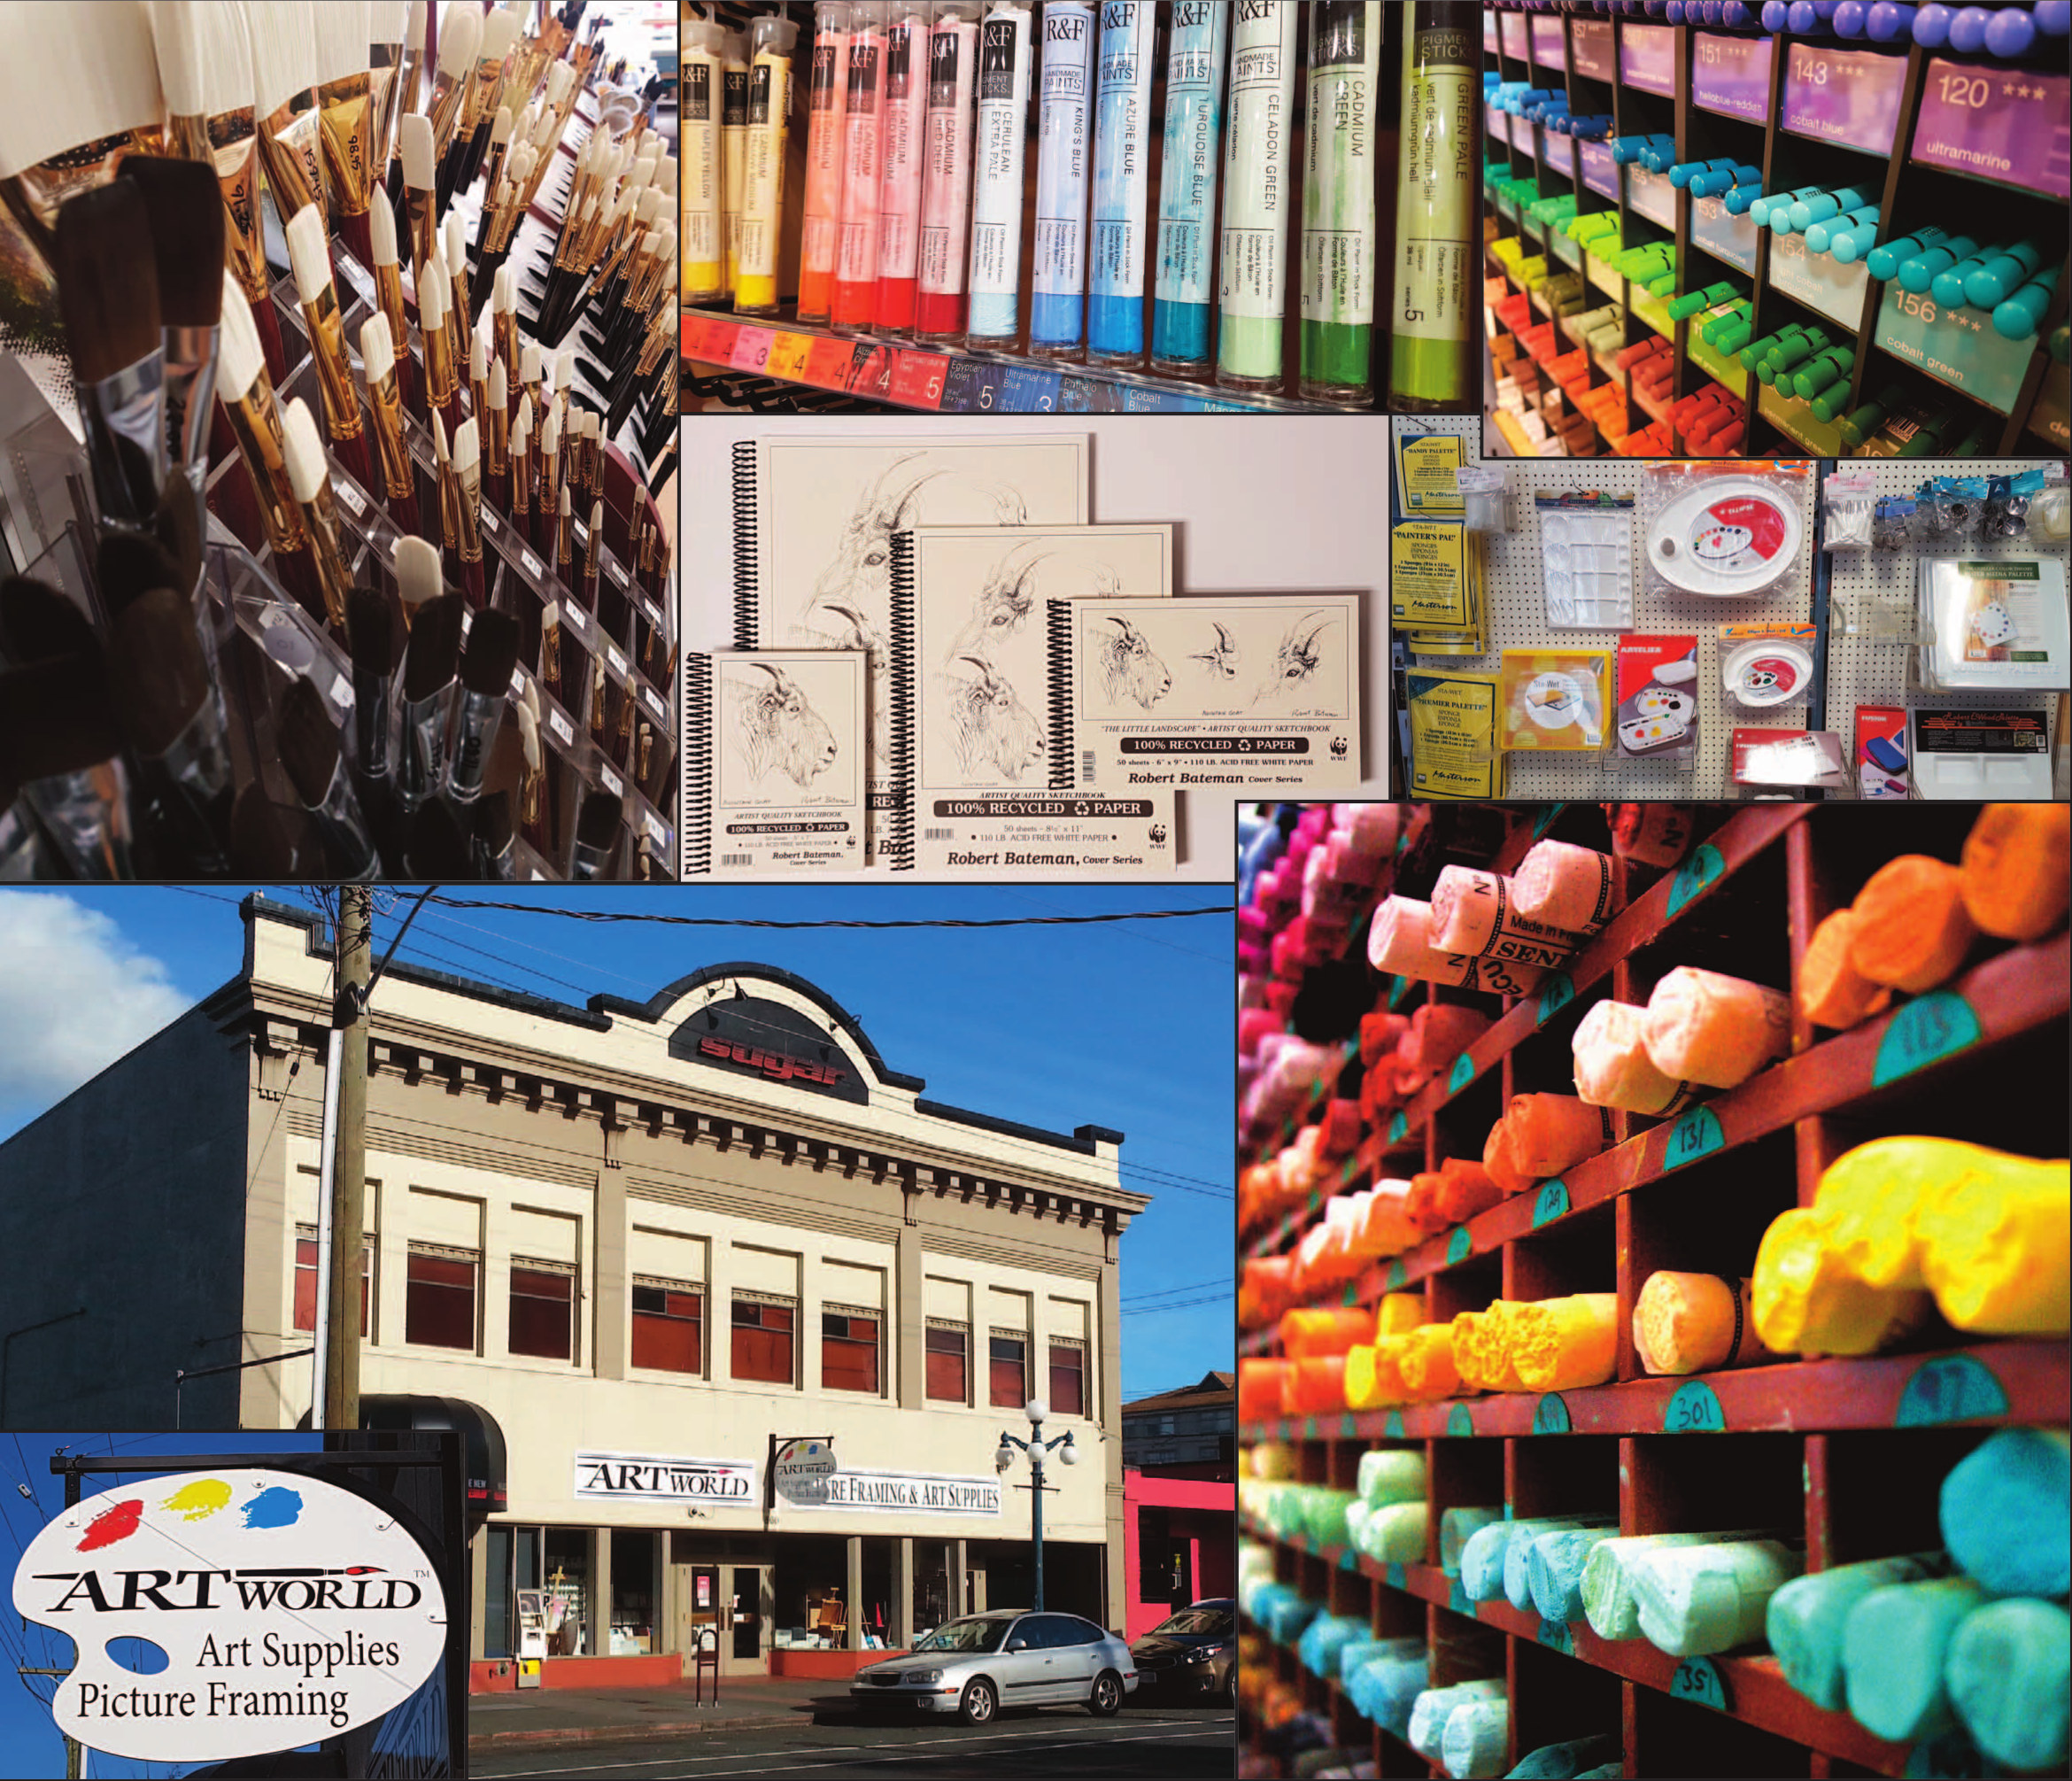 Artworld Picture Framing and Art Supplies - 860 Yates Street Victoria BC V8W 1L8